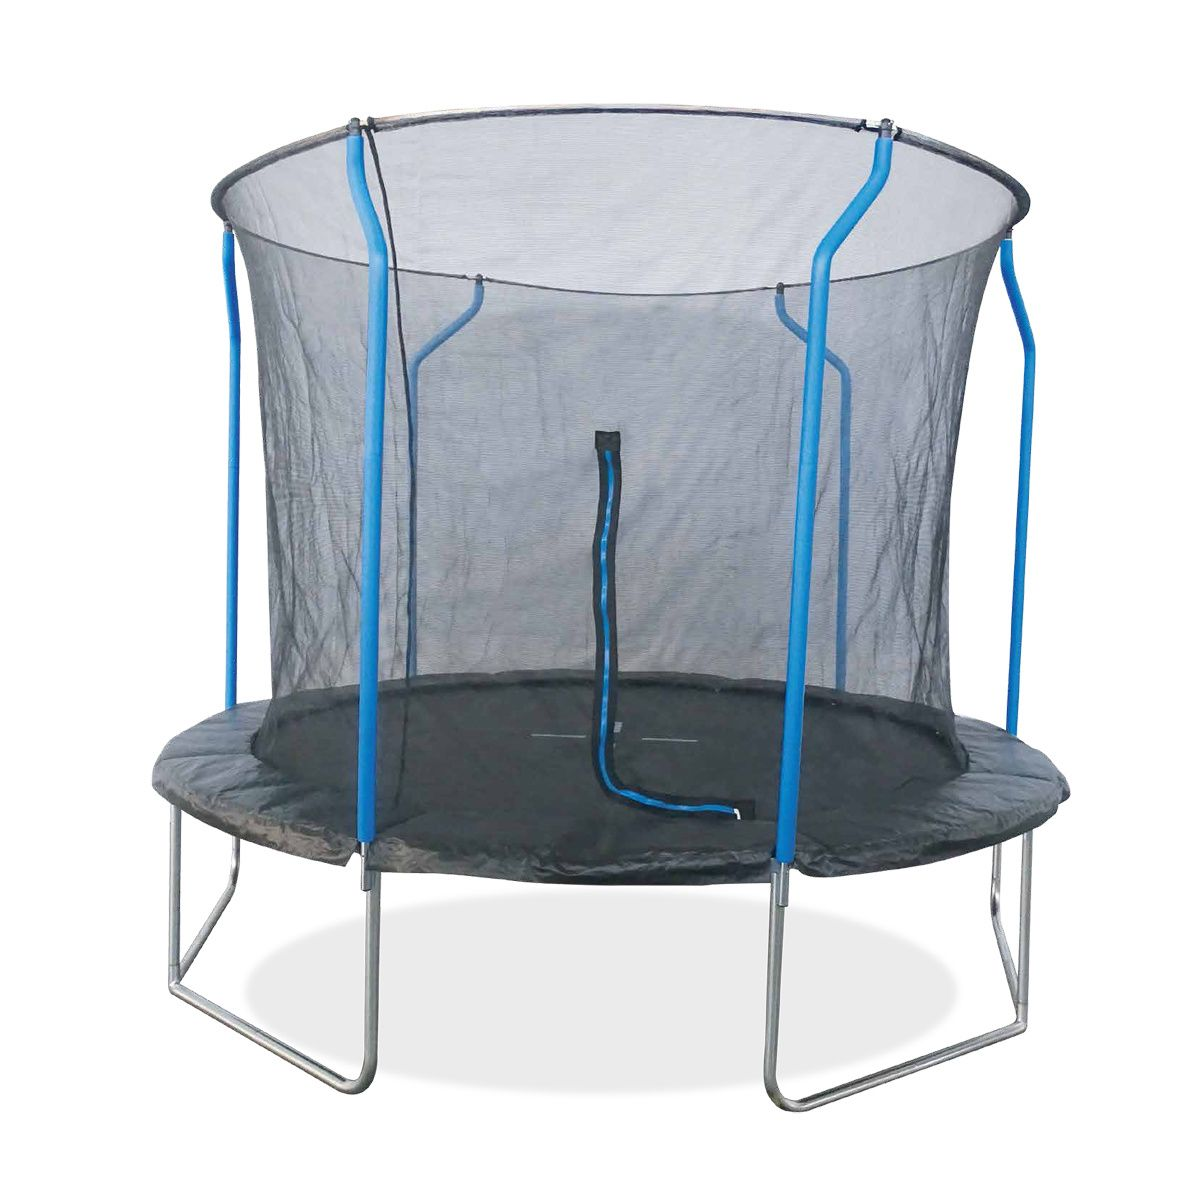 10ft Trampoline with Enclosure | Kmart | Kmart | Pinterest | 10ft ...